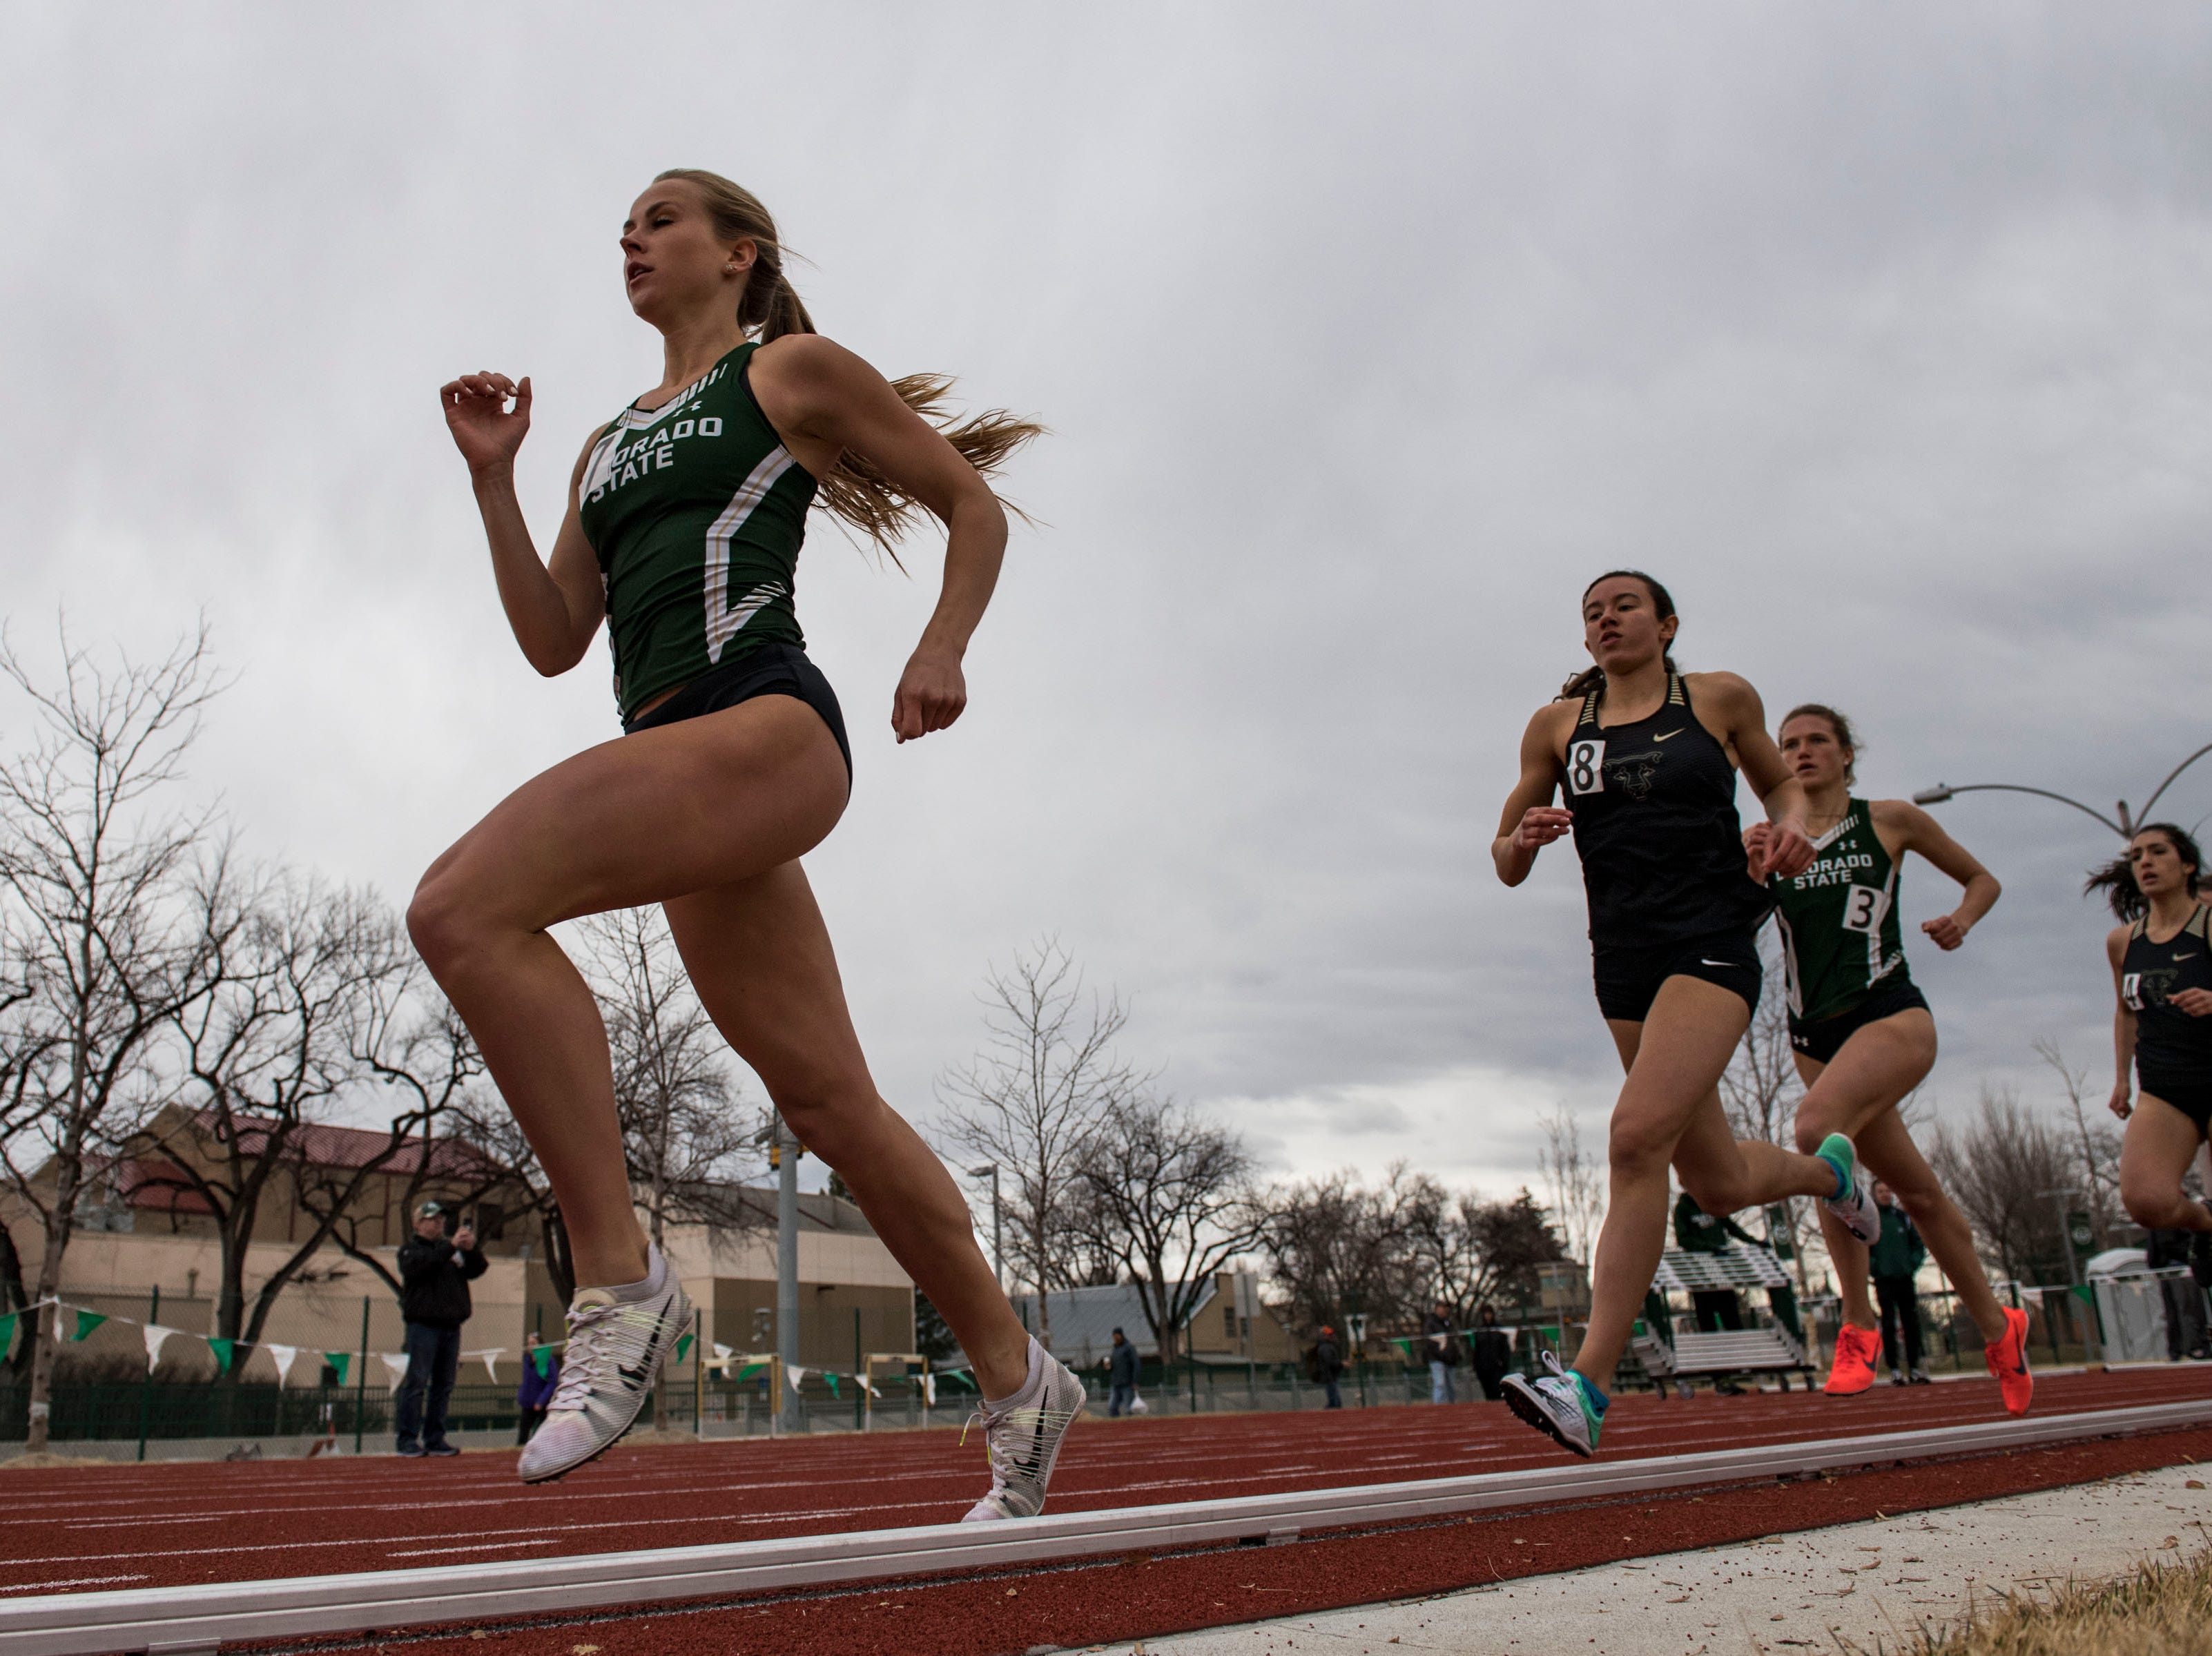 Colorado State University senior Macy Kreutz competes in the women's 800-meter run on Saturday, March 23, 2019, at the Jack Christiansen Memorial Track in Fort Collins, Colo.